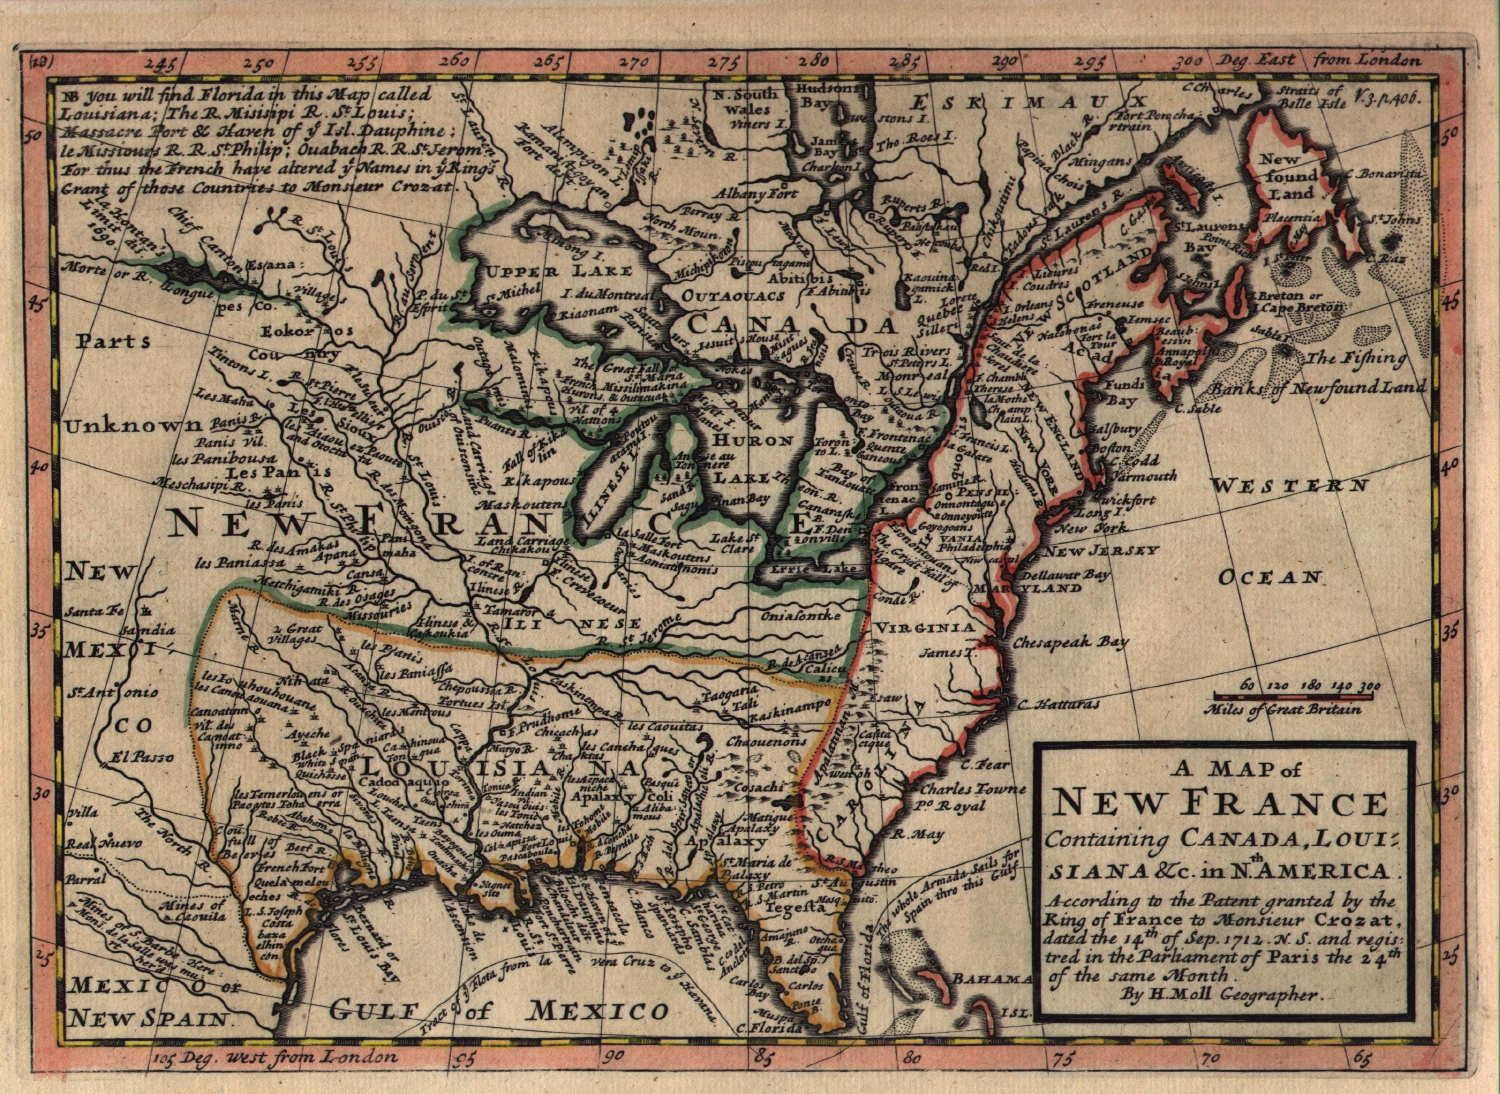 High quality maps of 18th century America